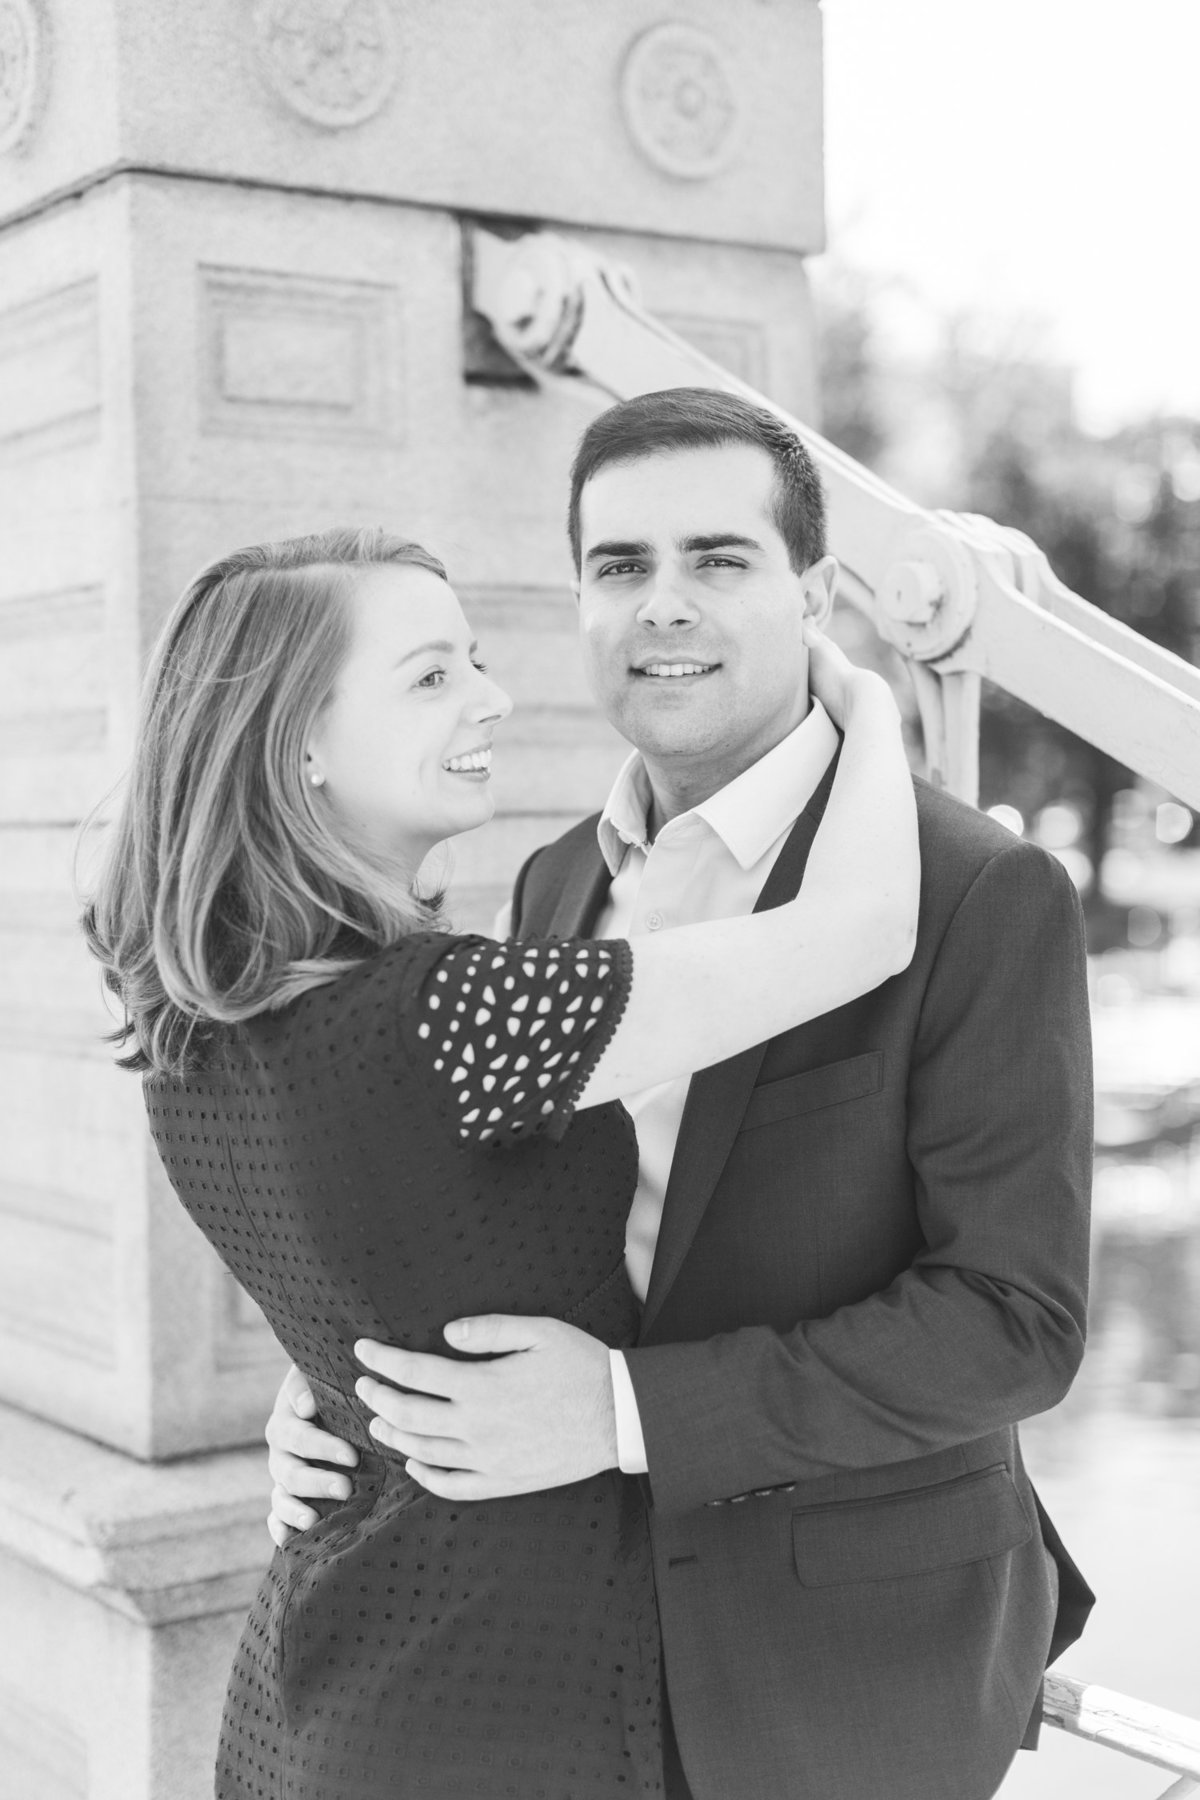 Laura-Klacik-Photography-Engagement-Photos-45